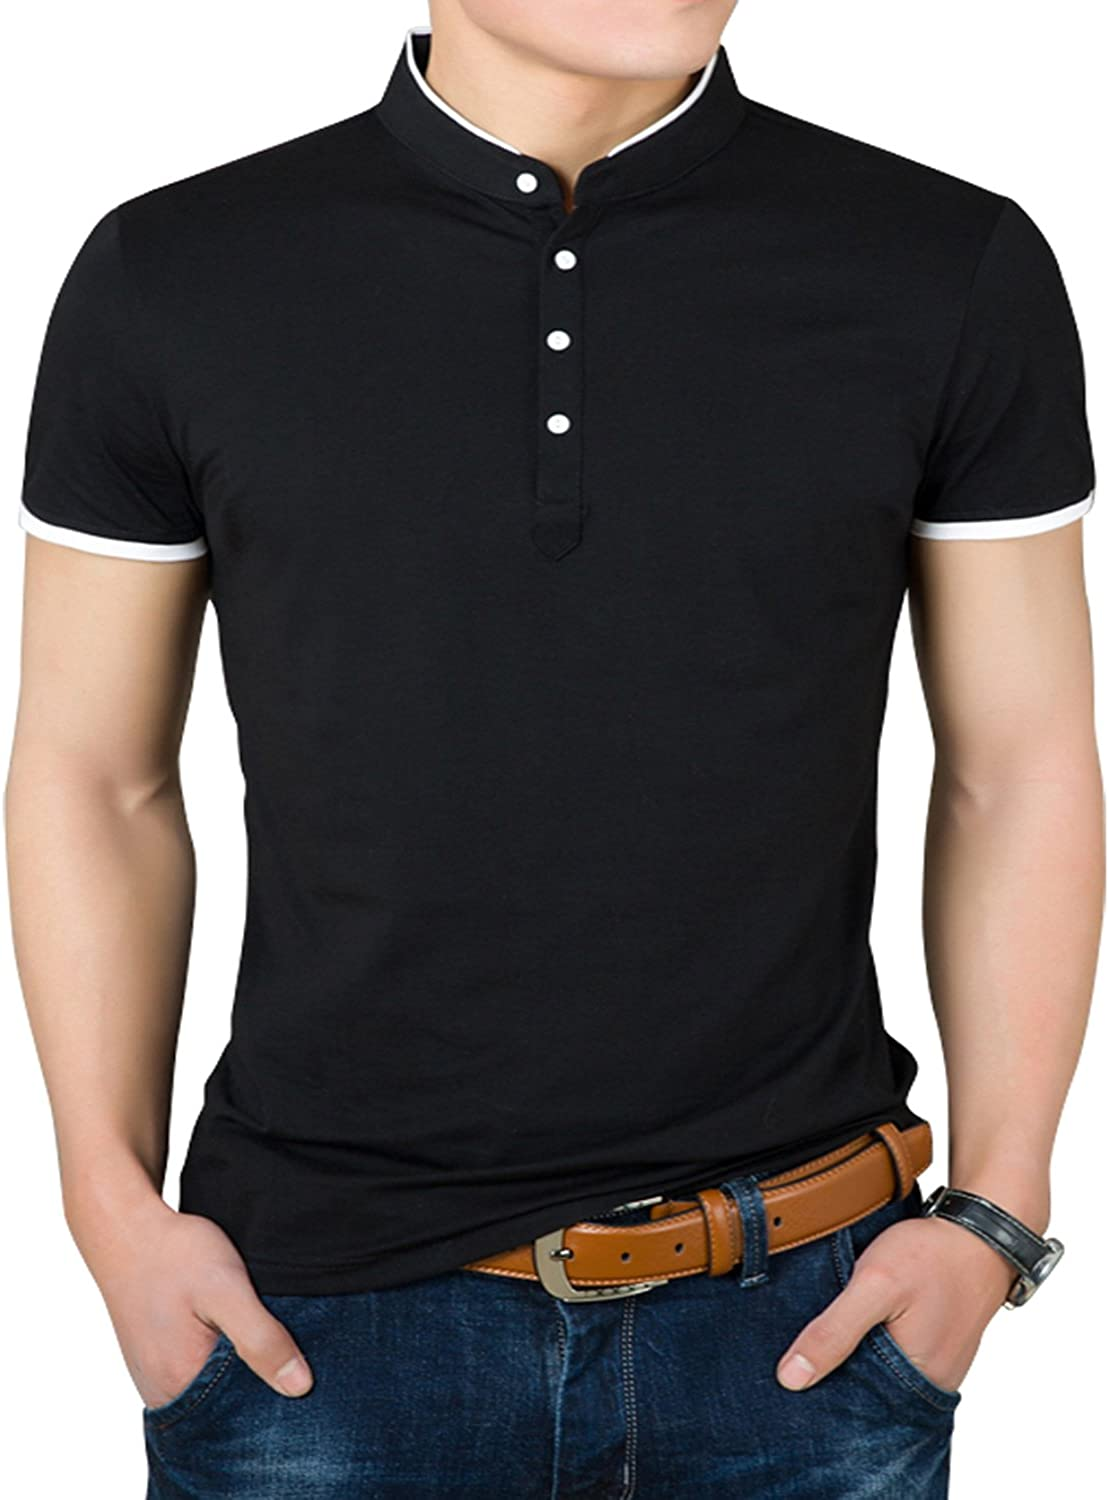 X-Future Men Buttons Fashion Print Business Short Sleeve Polo Shirts